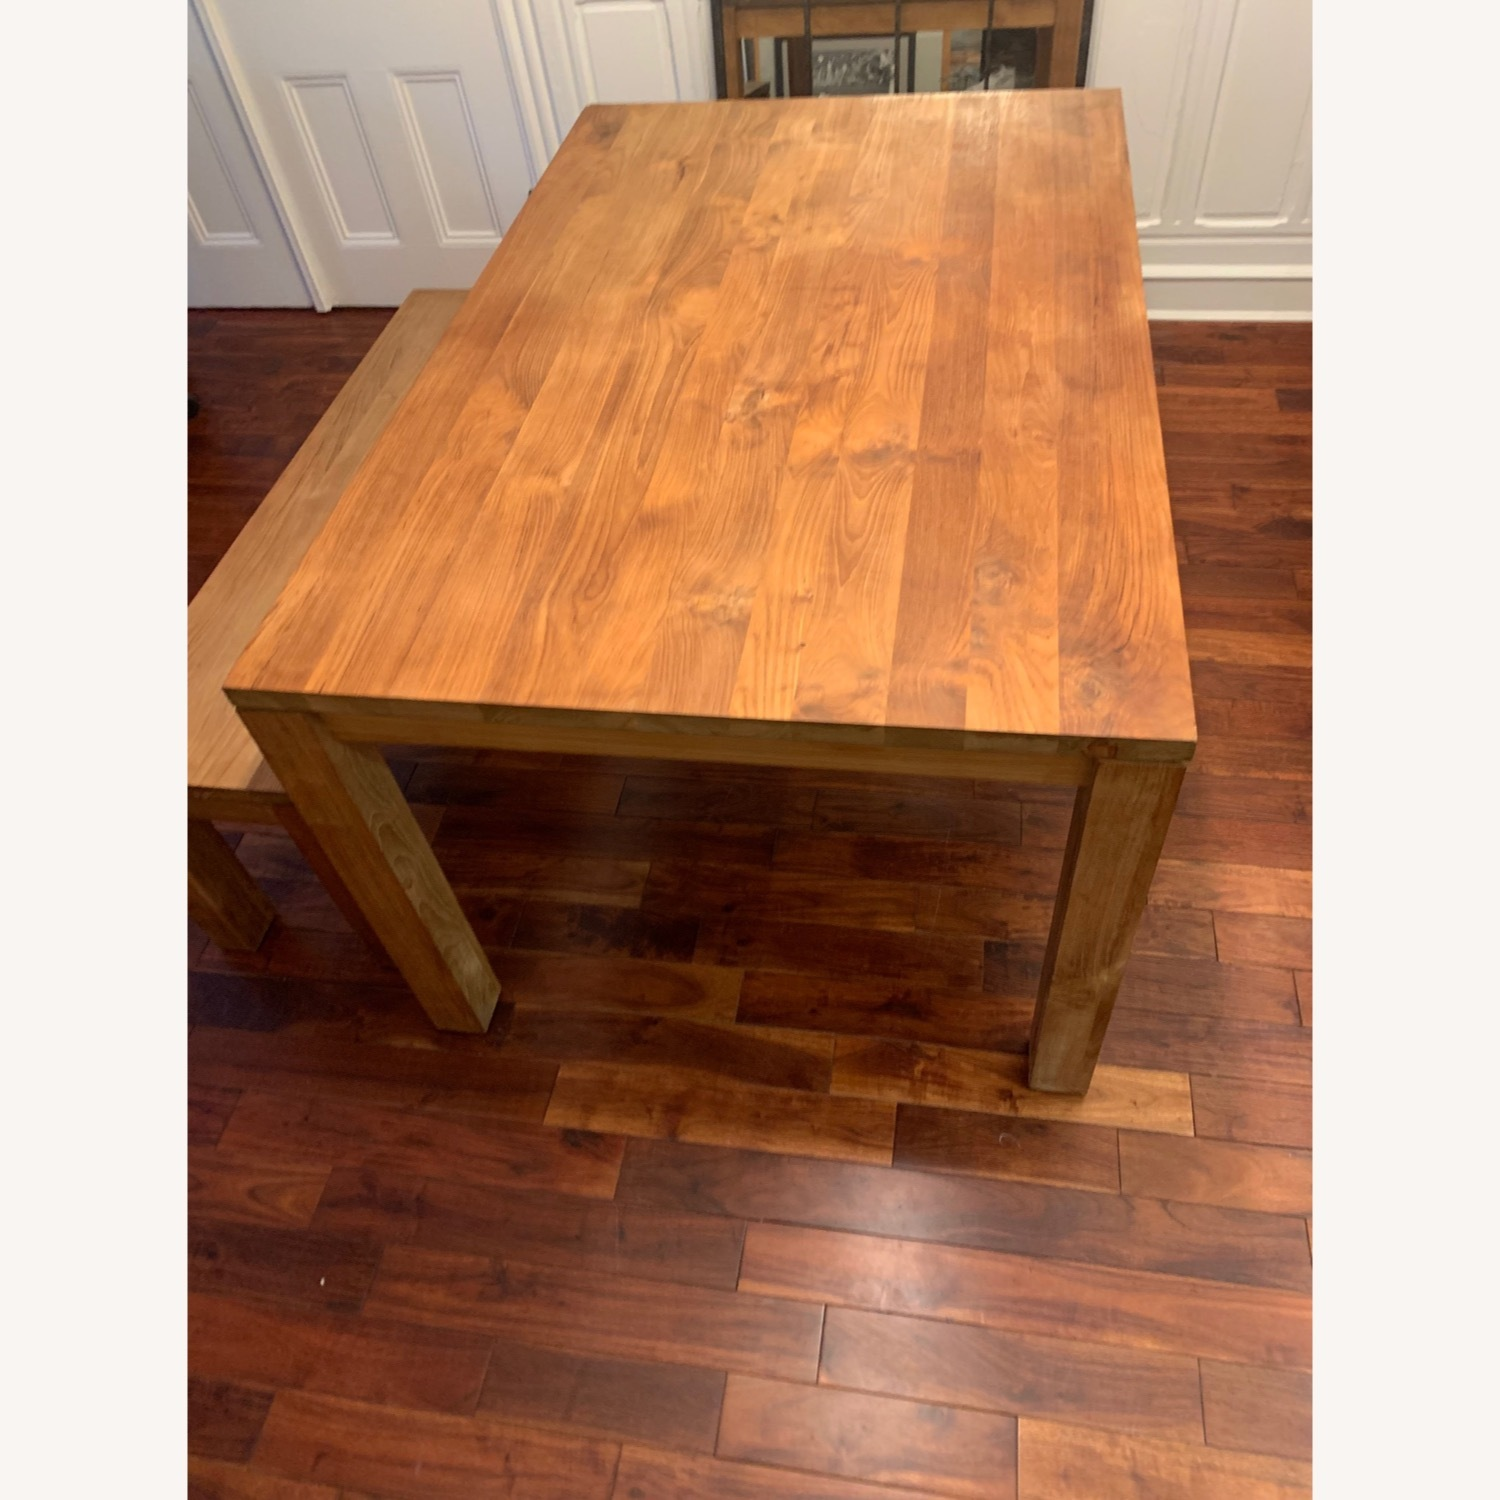 Crate & Barrel Solid Wood Table - image-1